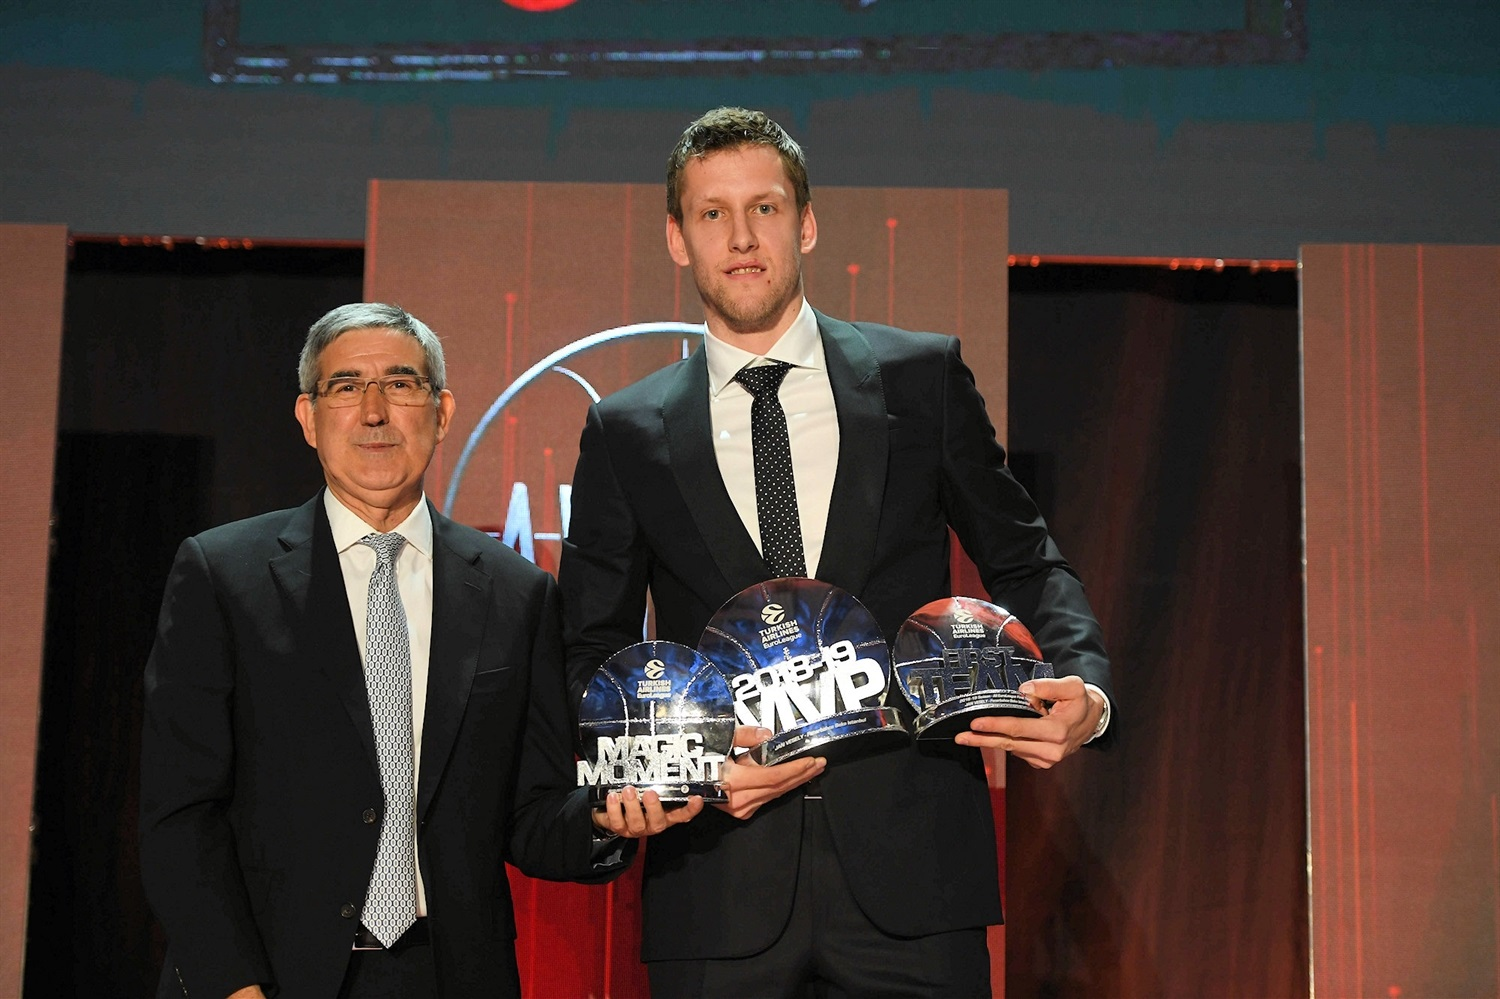 Jan Vesely, MVP - 2018-19 Awards Ceremony - Final Four Vitoria-Gasteiz 2019 - EB18